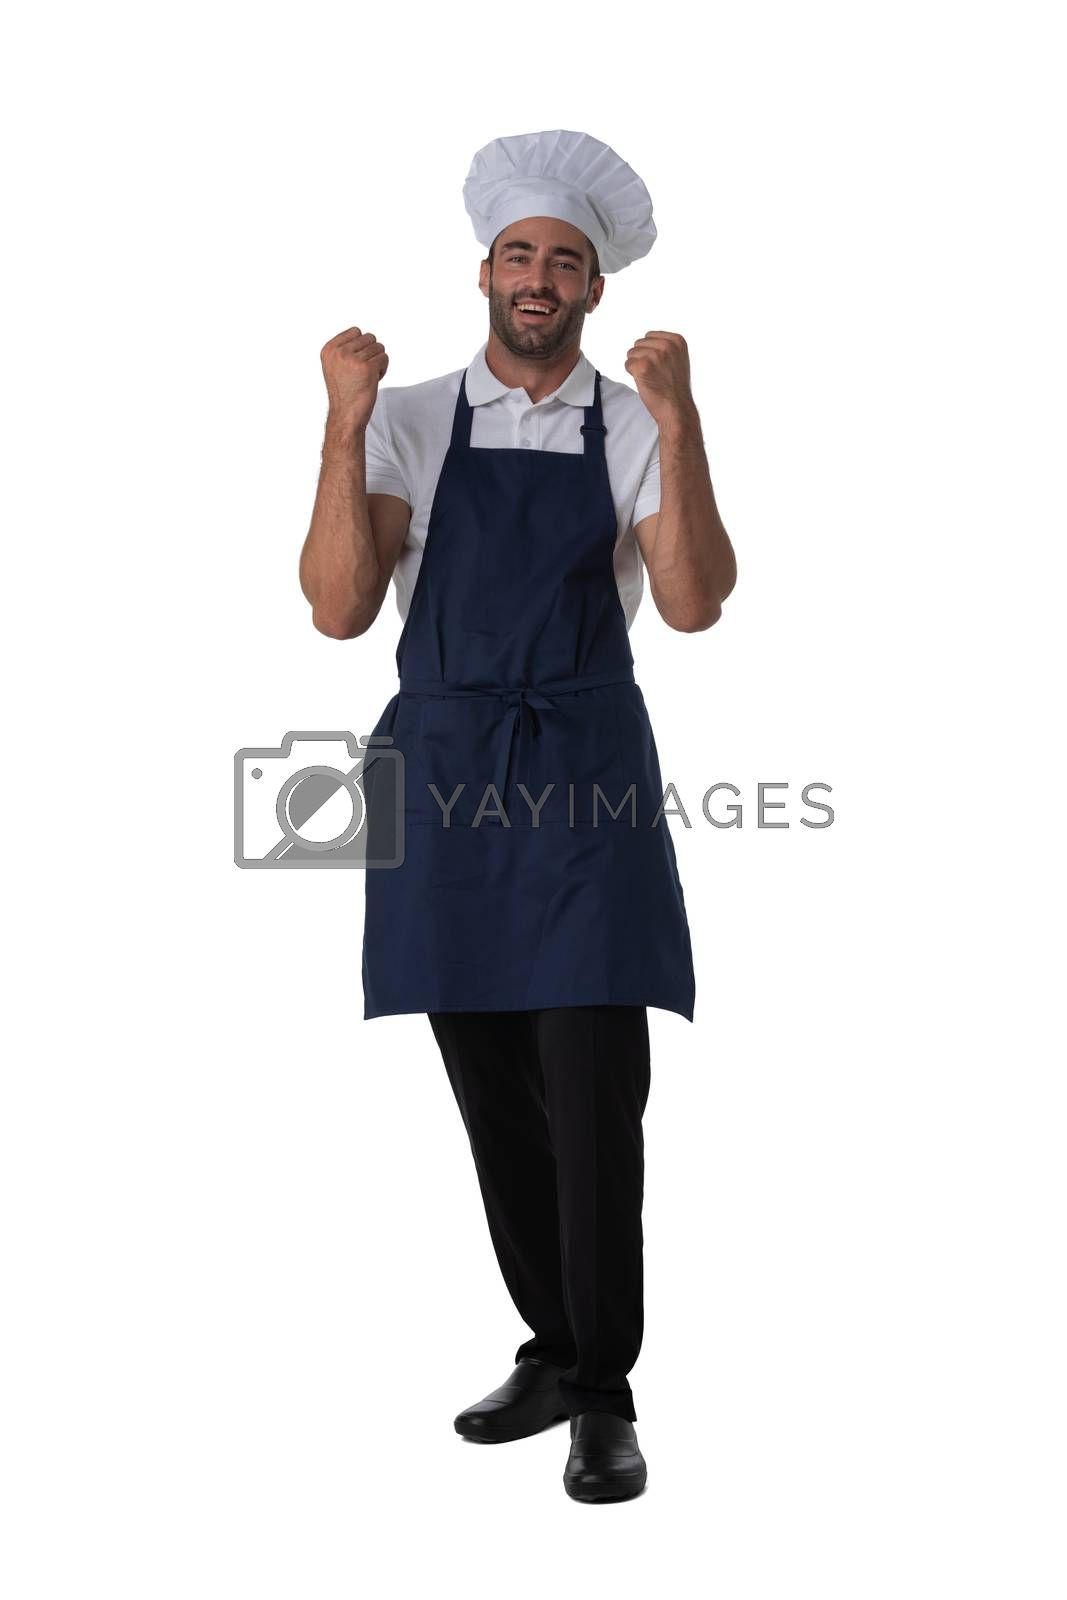 Male cook in apron and hat holding fists isolated on white background full length studio portrait